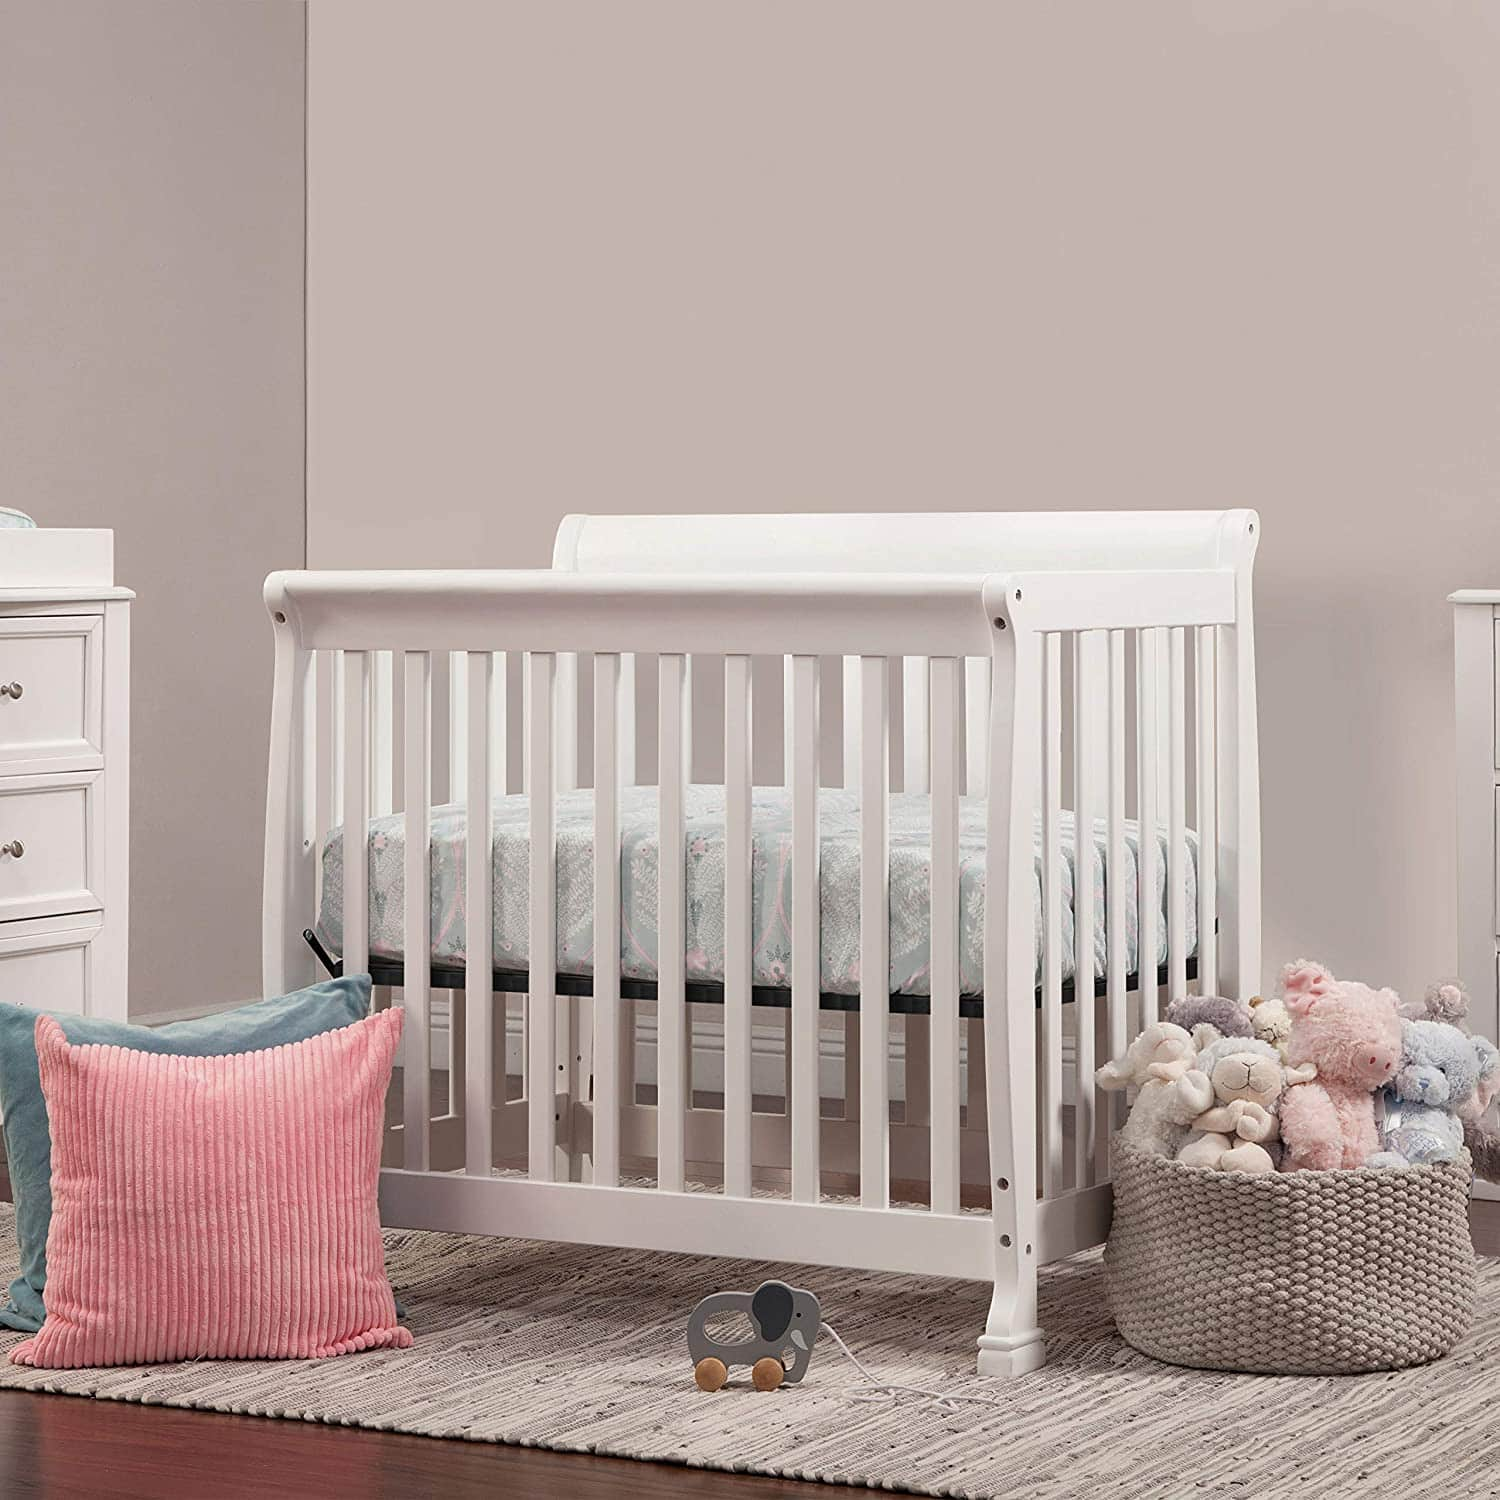 how to choose cribs buying guide